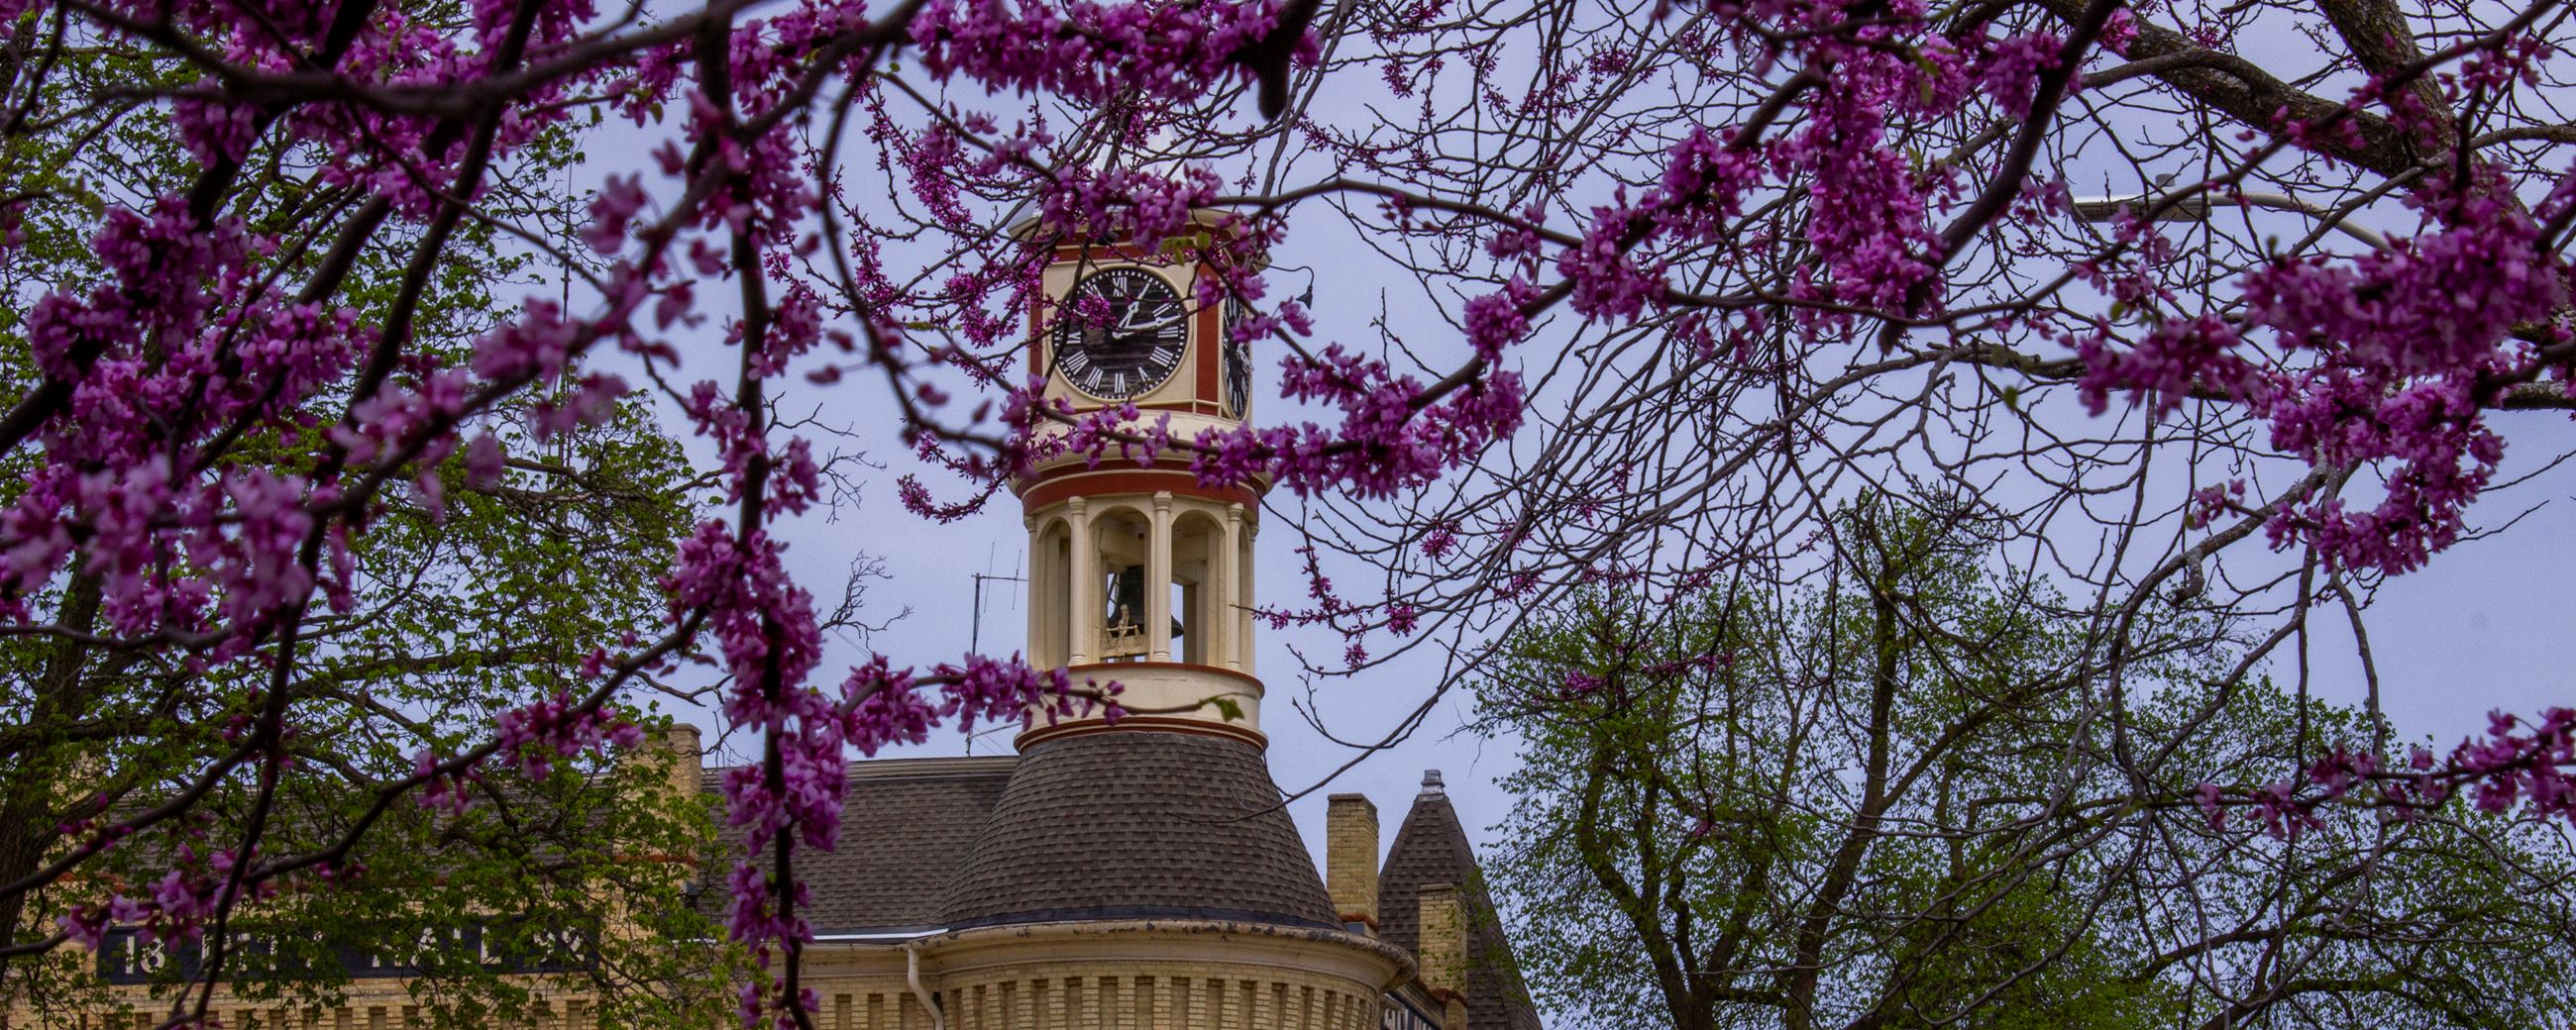 City Hall framed by our beautiful Redbud trees.